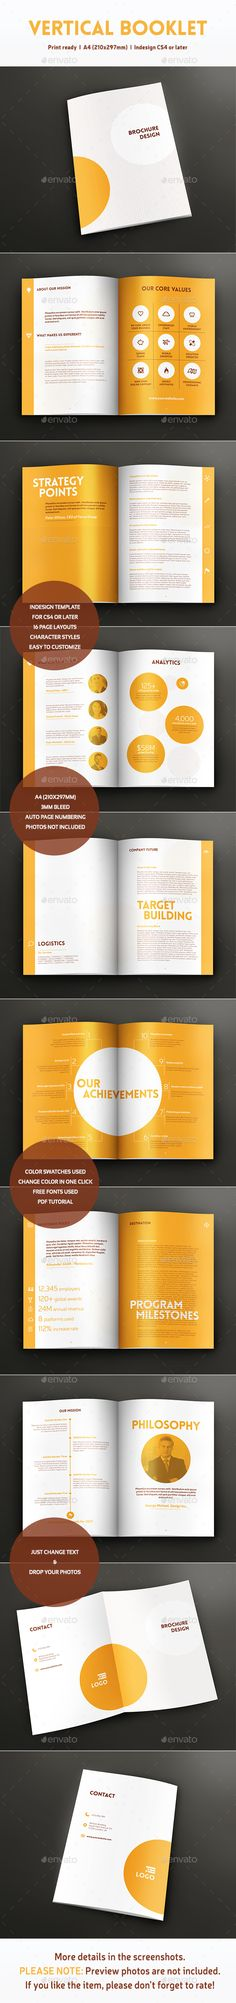 Vertical Booklet — InDesign INDD #elegant #large • Download ➝ https://graphicriver.net/item/vertical-booklet/19174308?ref=pxcr